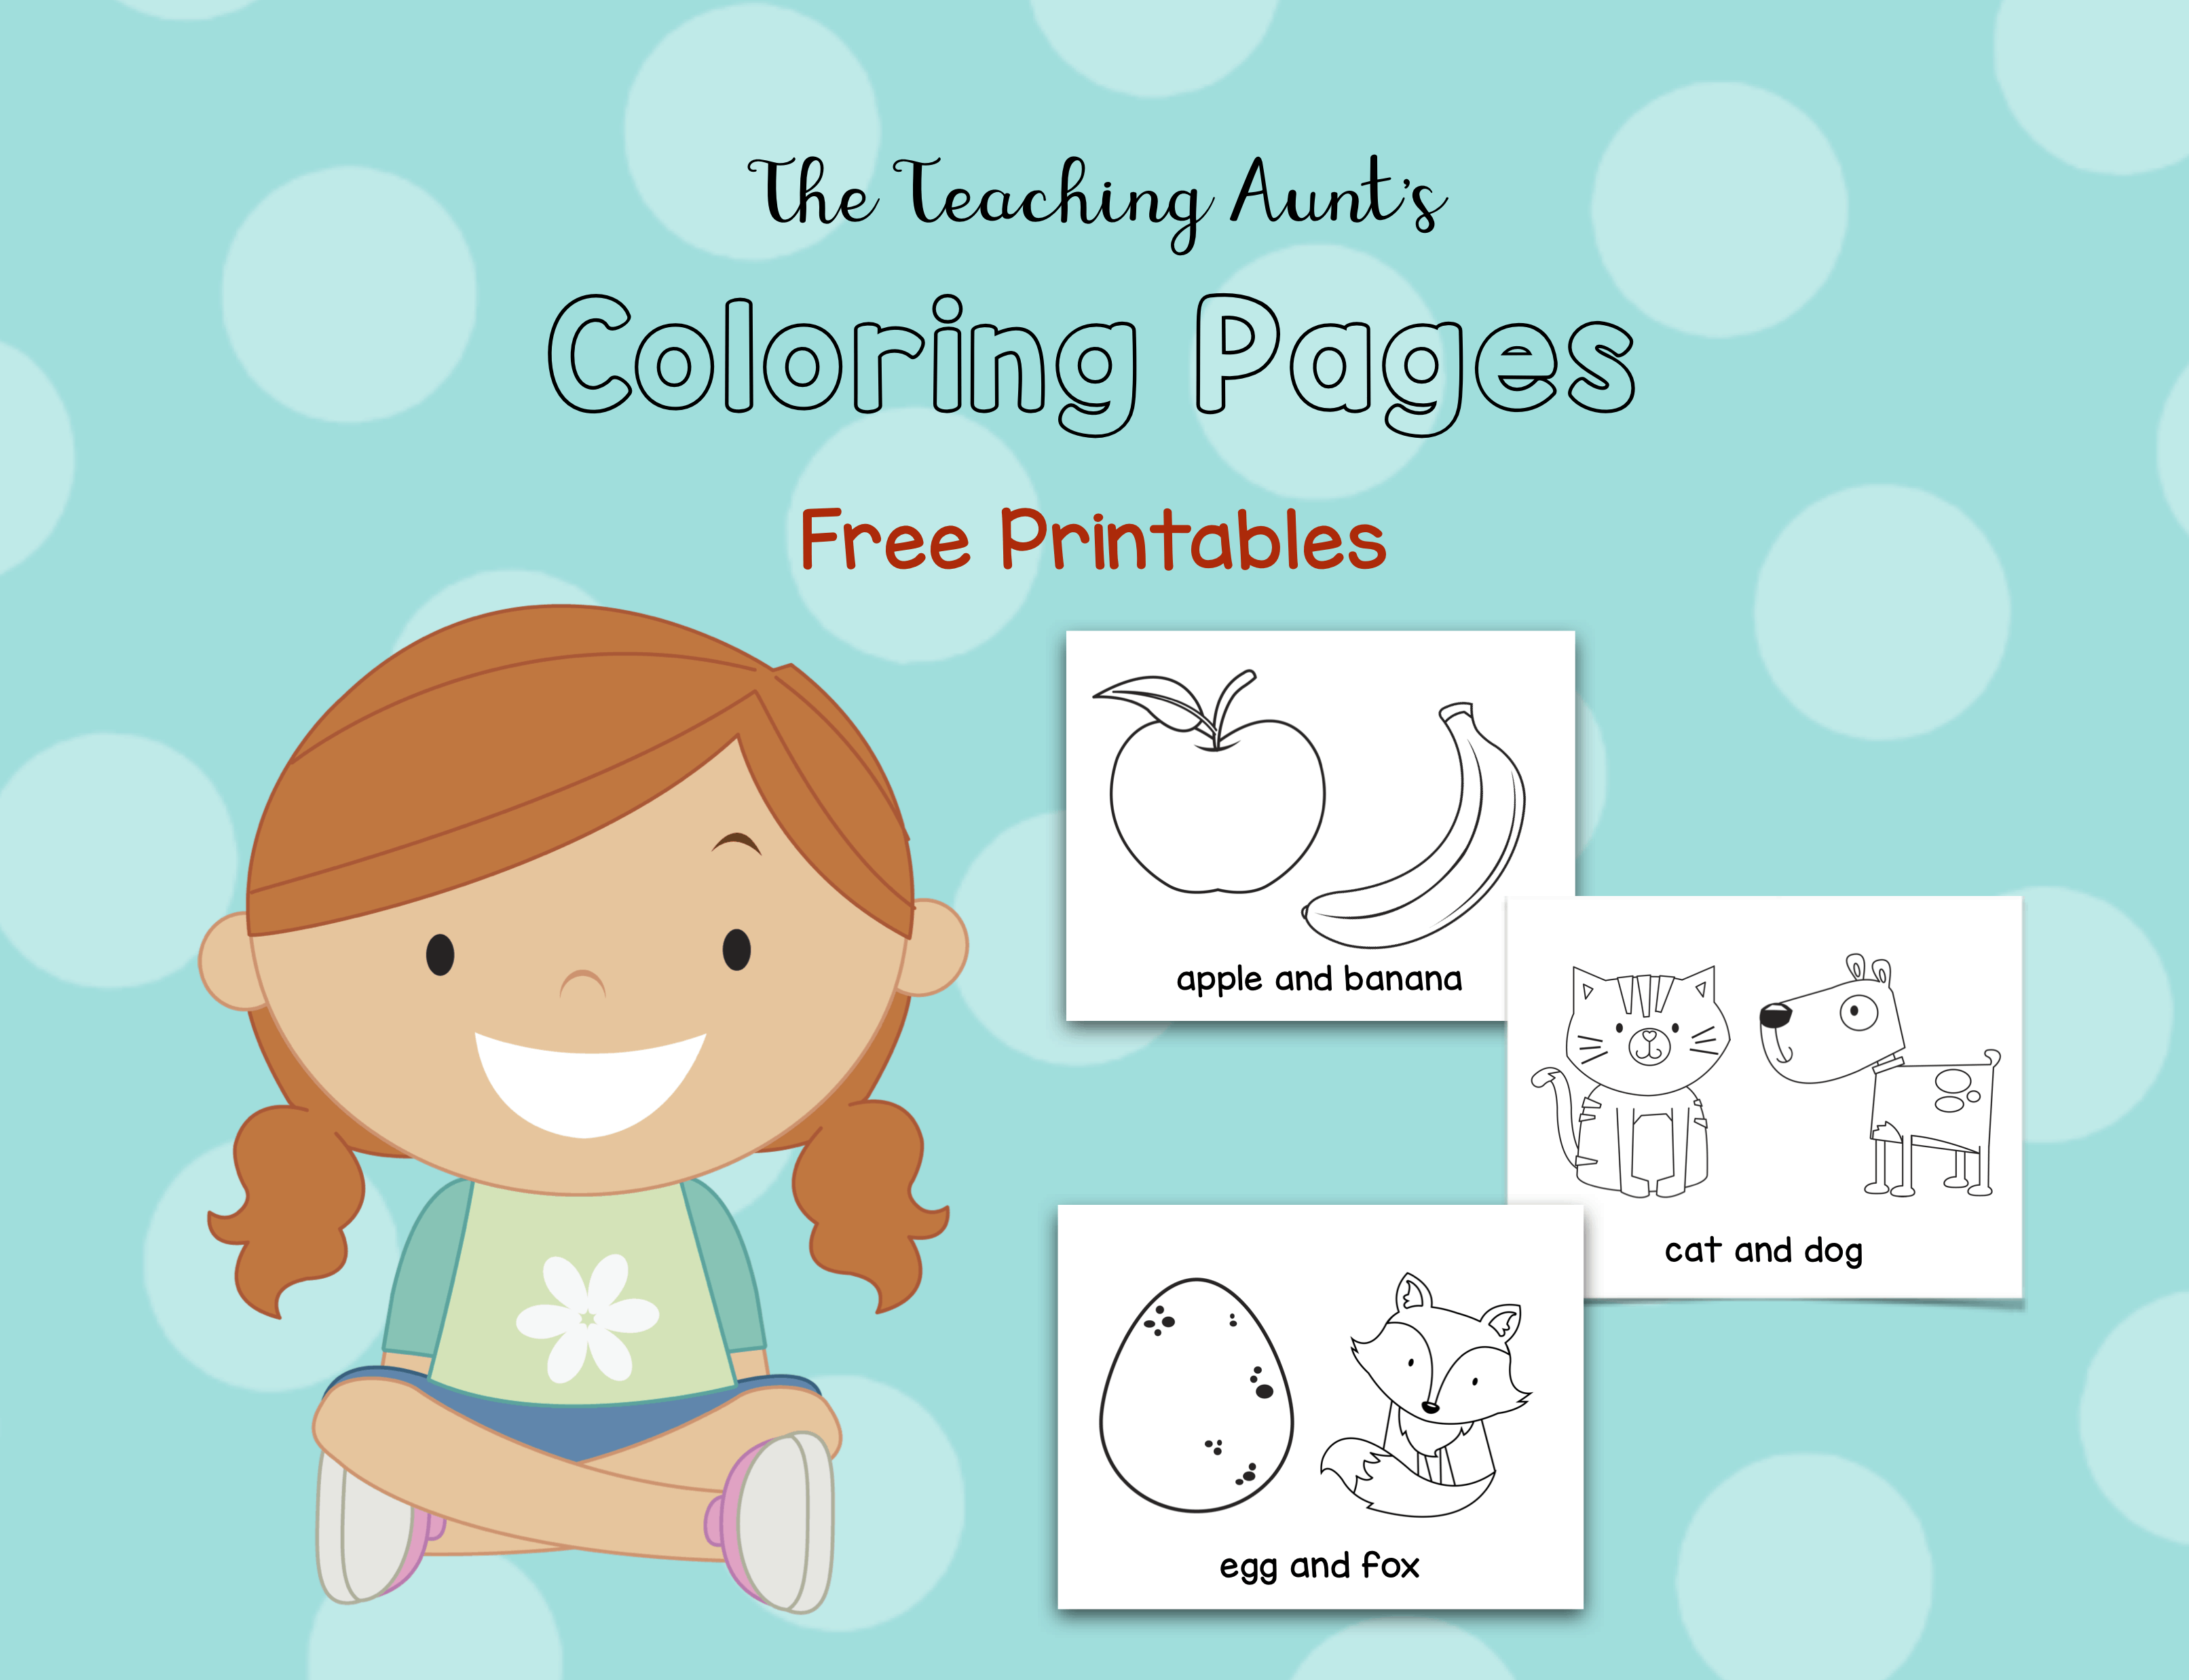 Free Coloring Pages for Toddlers from The Teaching Aunt